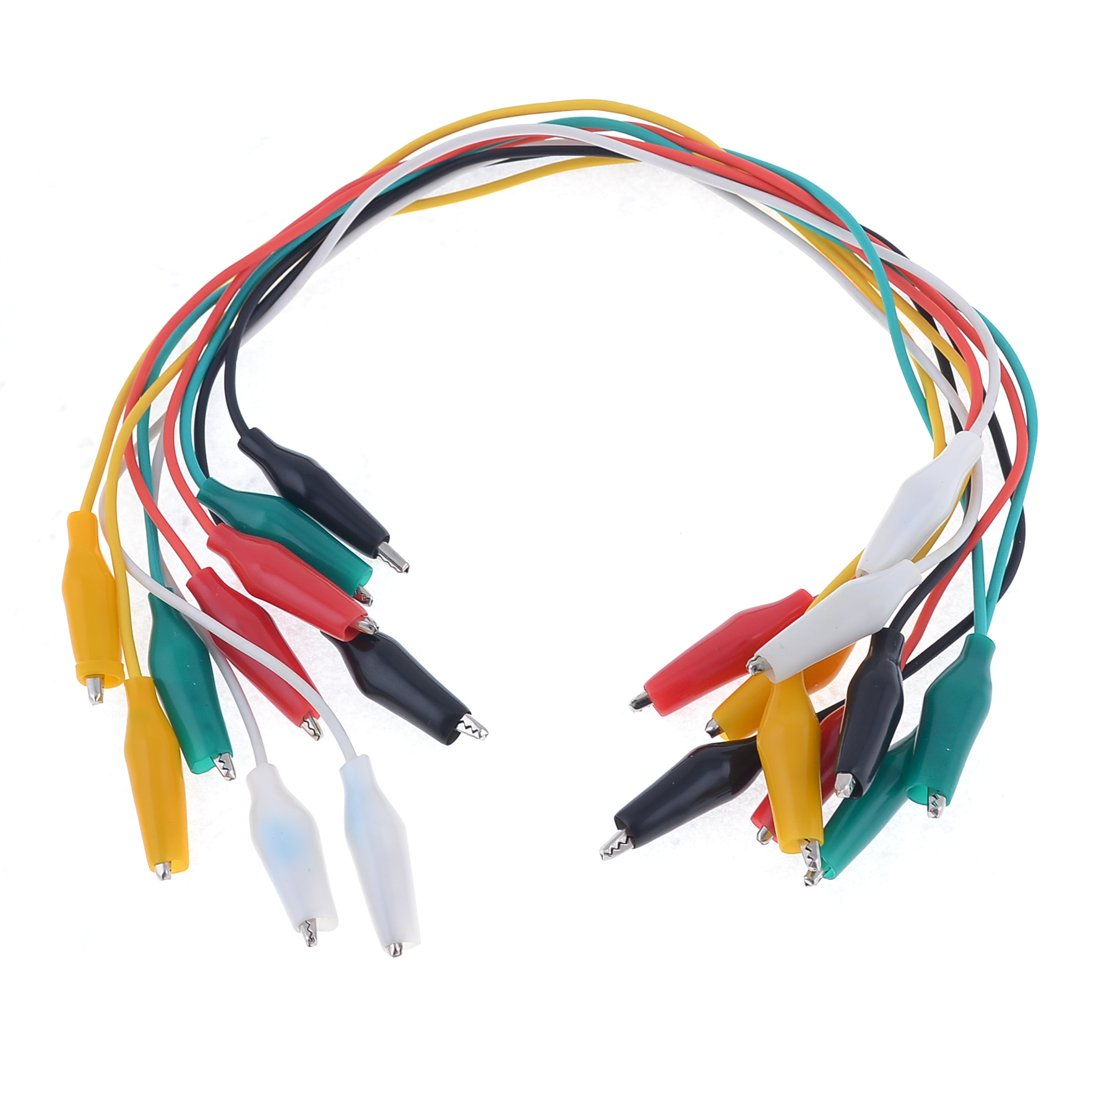 10 Pcs Colorful Double Ended Alligator Clips Test Lead Jumper Wires ...